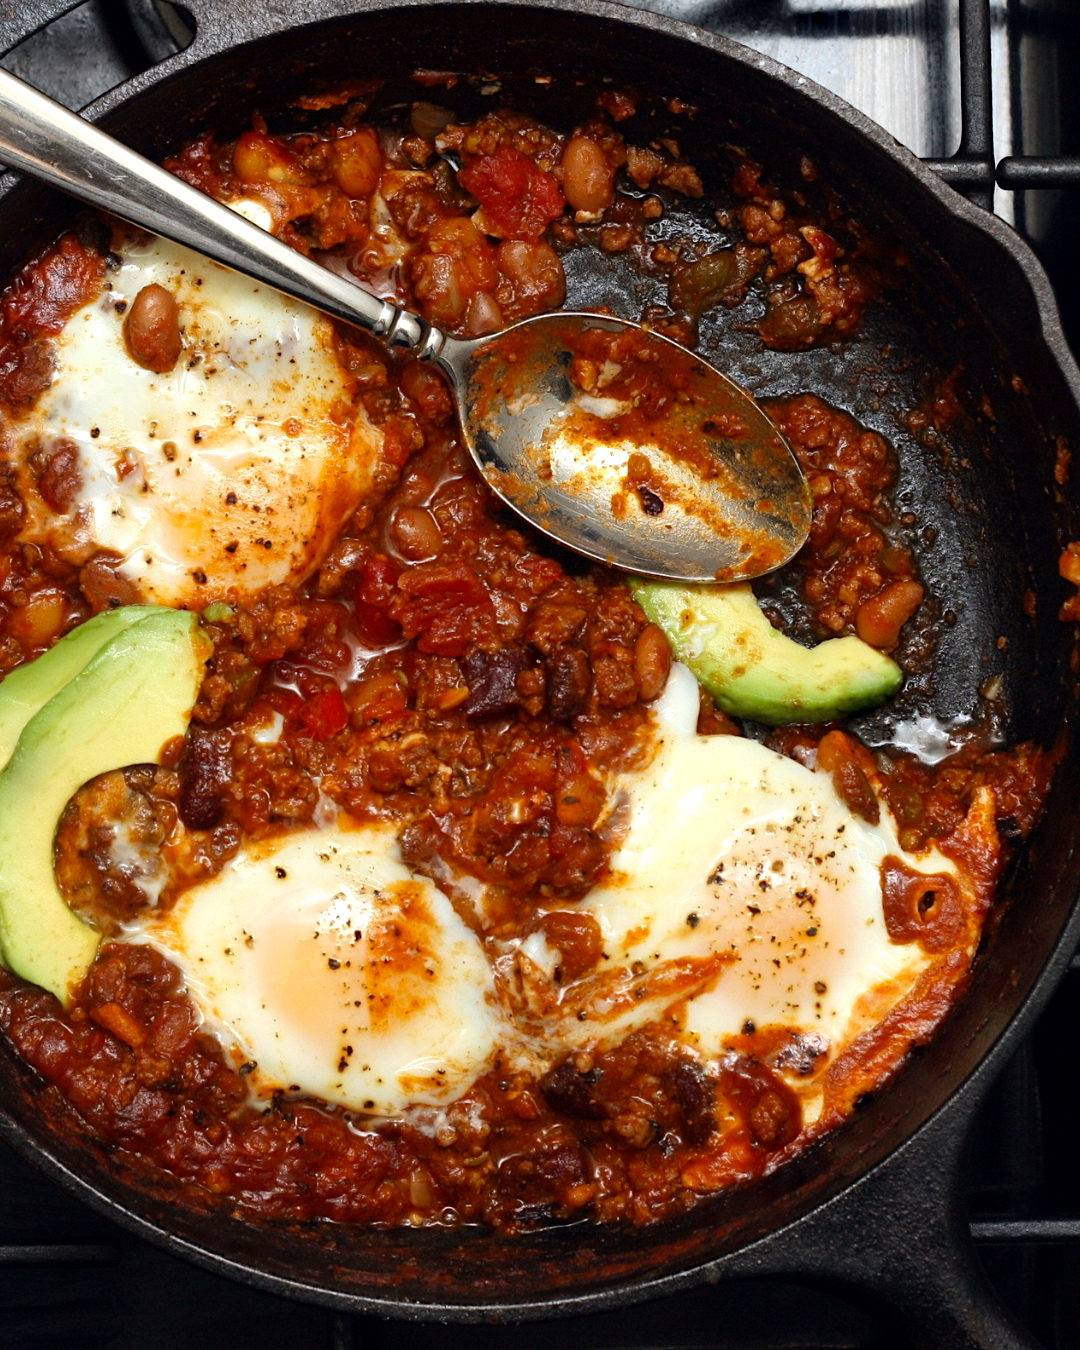 Leftover Chili Baked Eggs